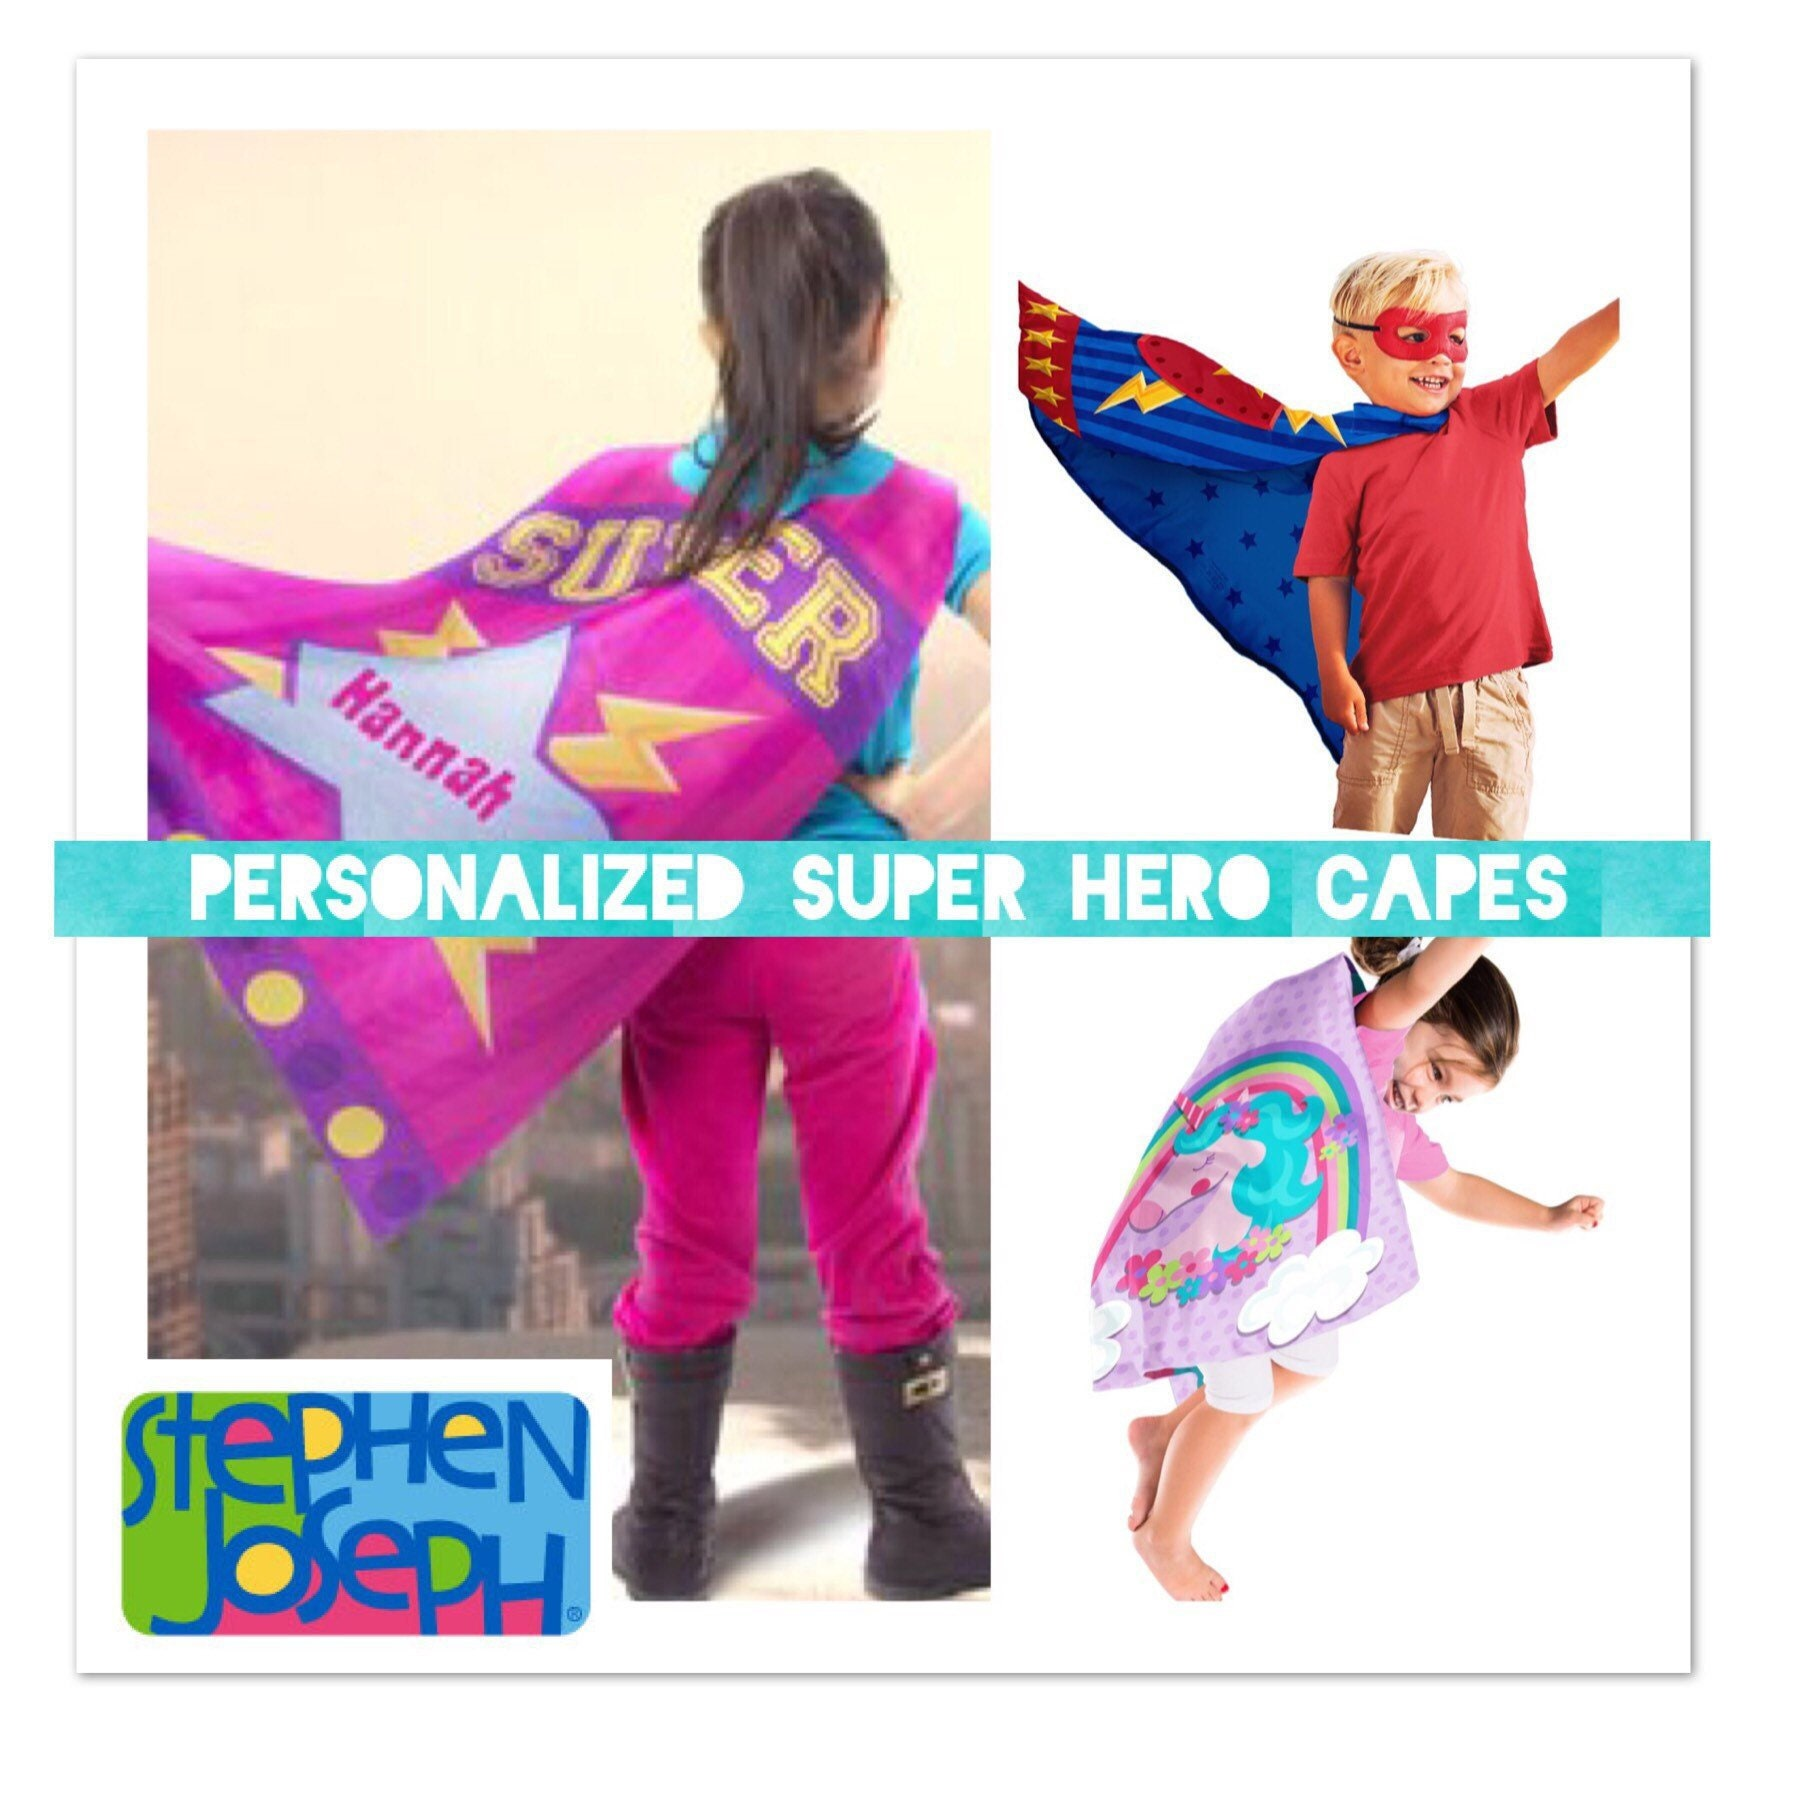 Stephen Joseph Cape/ Personalized Kids Gift/Children's Dress Up/Playtime Accessory/Birthday Party/Valentines Gift/Gift for kids